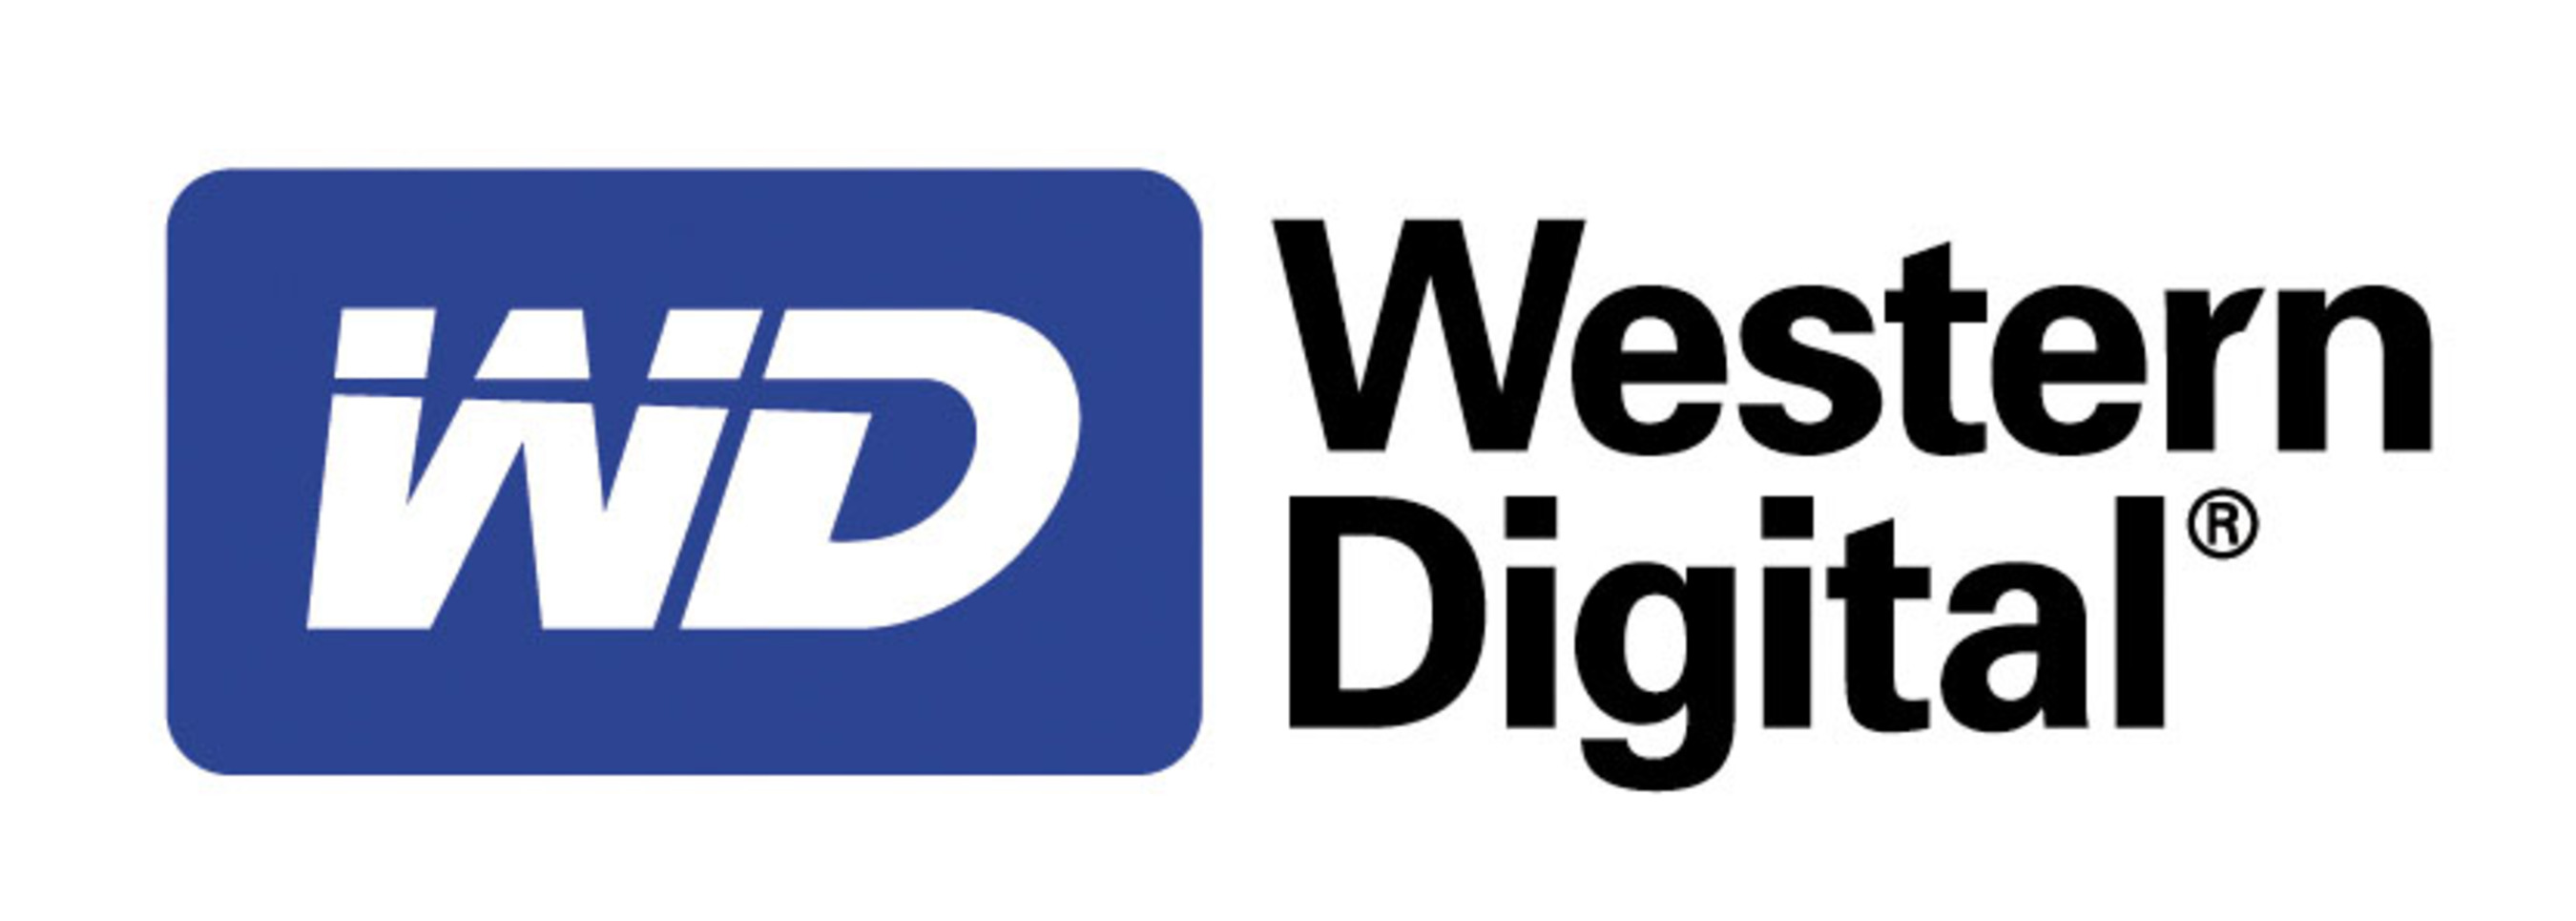 Western Digital Board Declares Dividend For Third Quarter Of Fiscal 2016